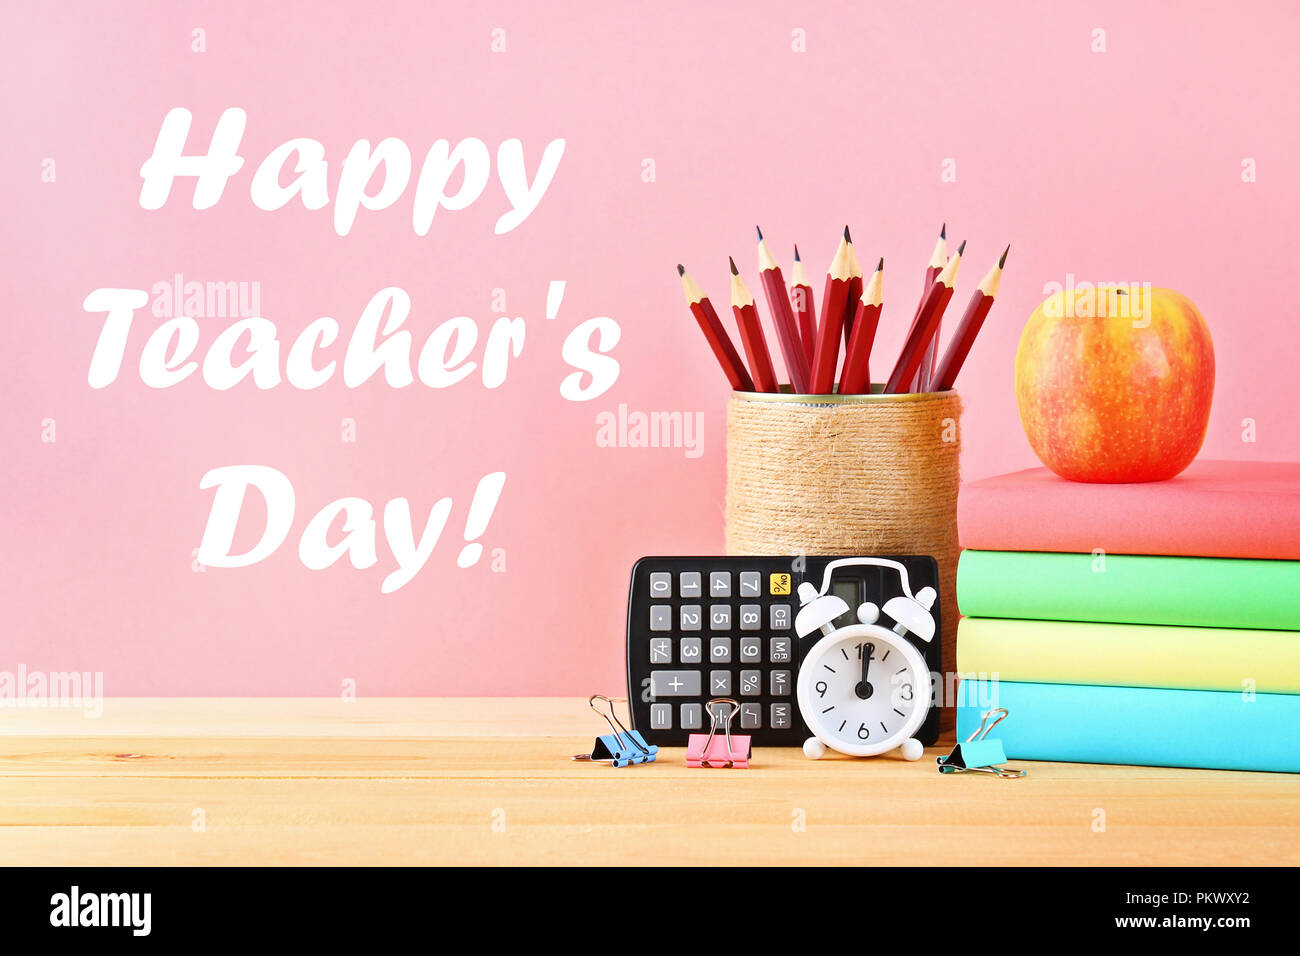 Happy Teachers Day  School and office supplies on a pink